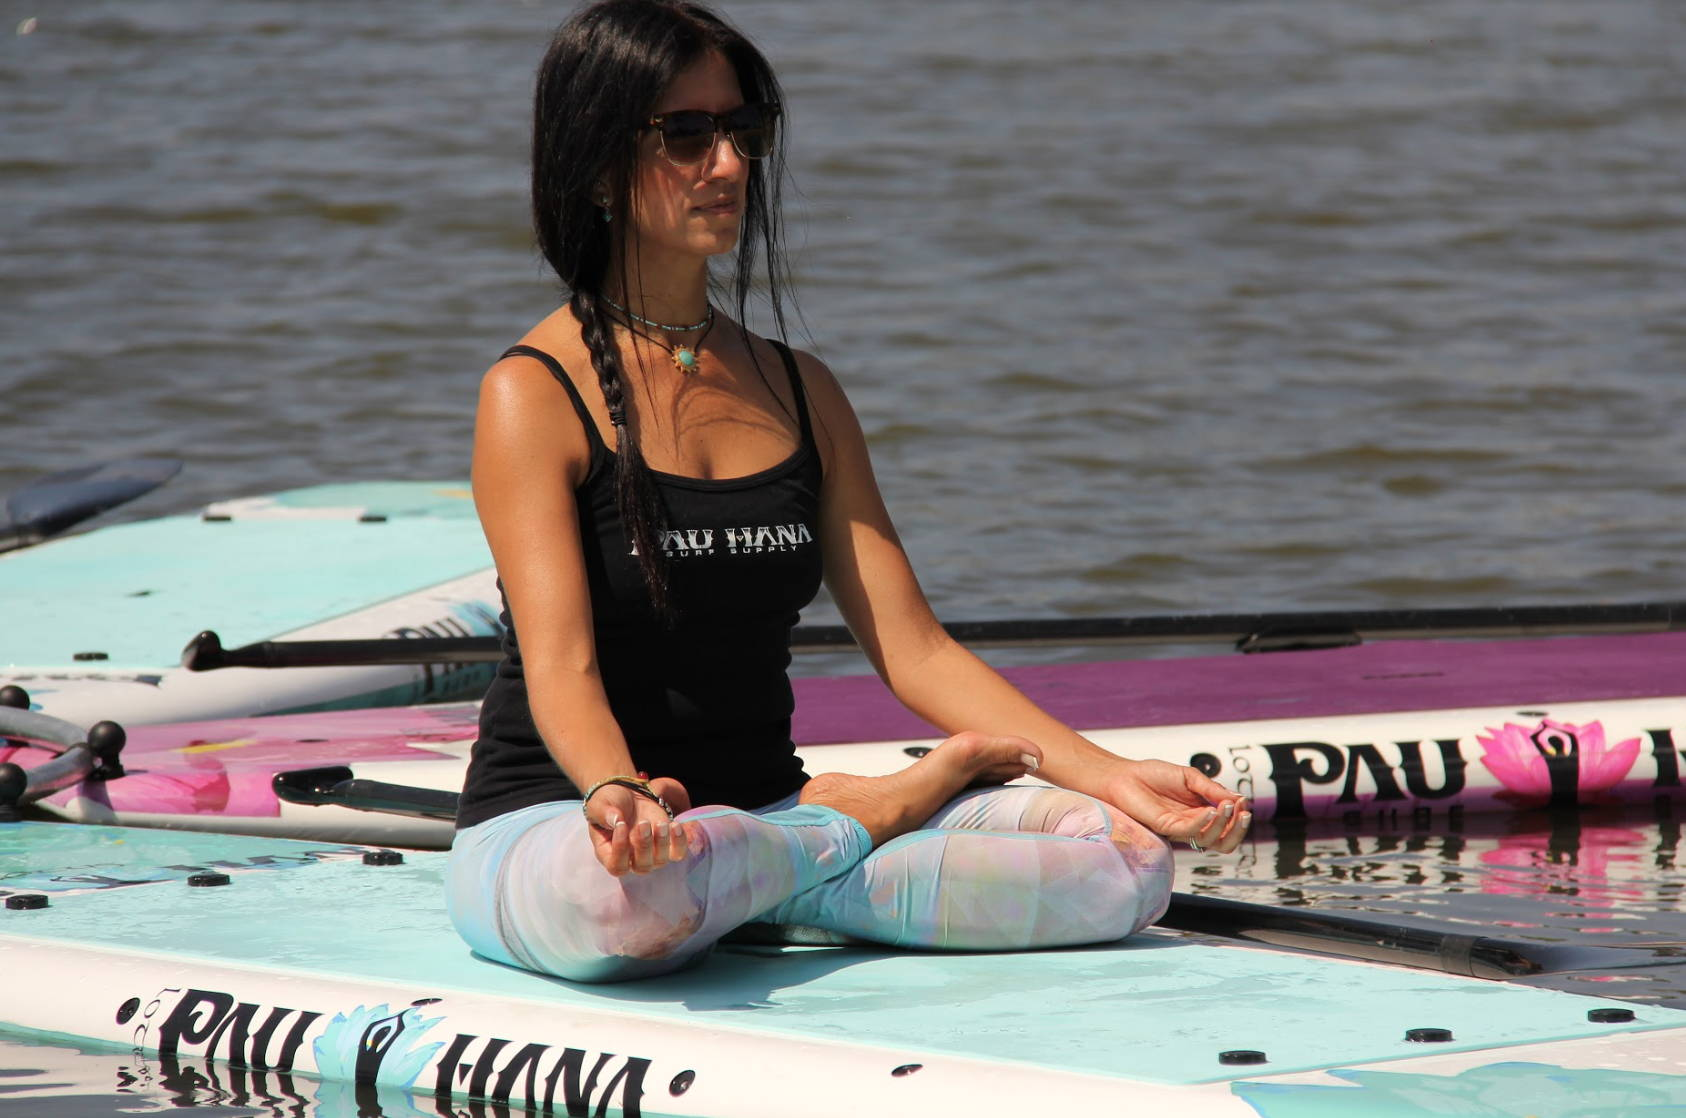 Meditation on the Pau Hana lotus sup